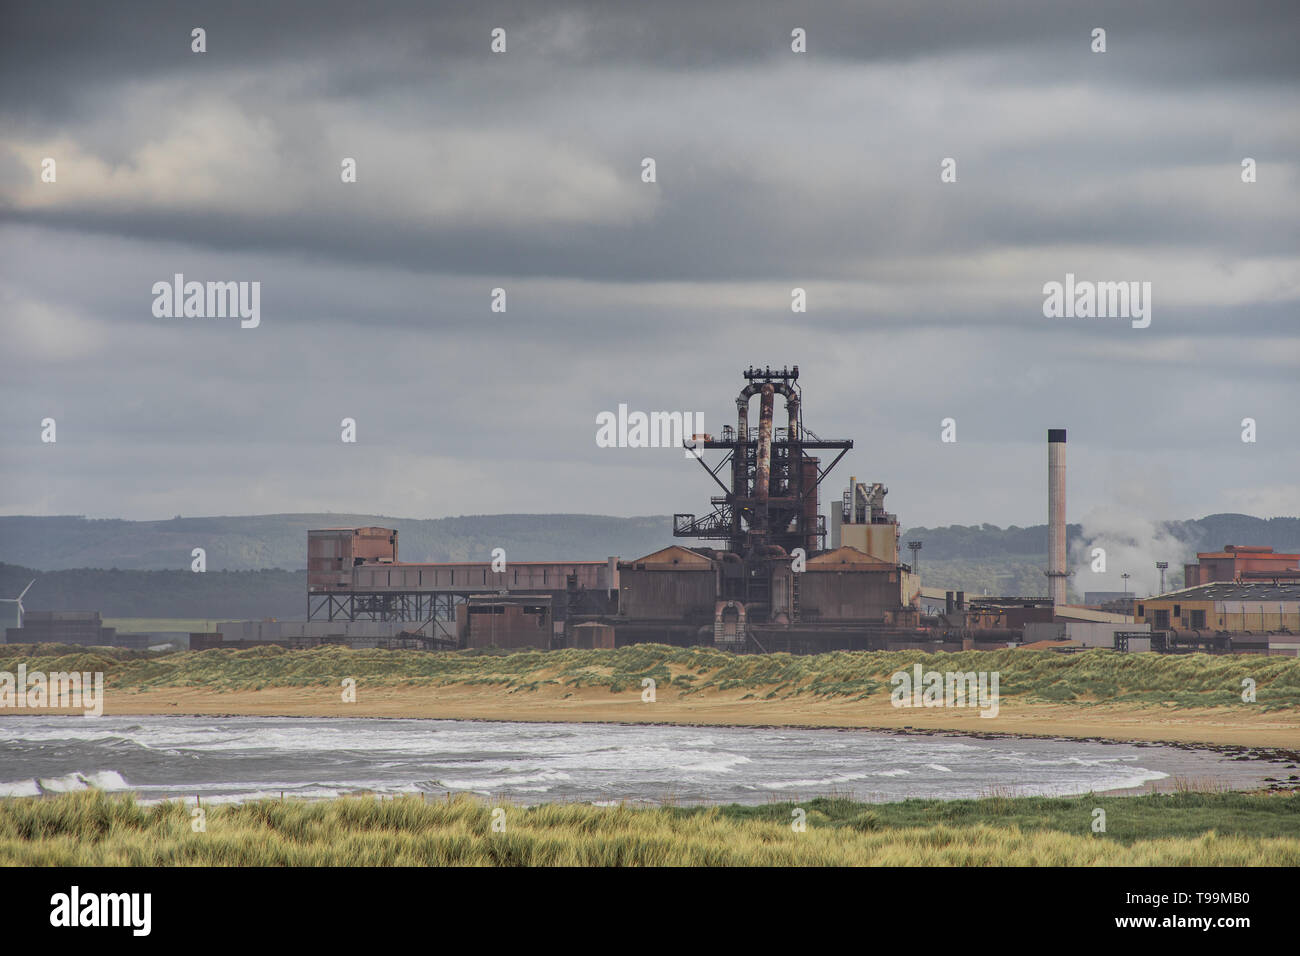 British Steel shut down and abandoned. Located on the north east coast of England. Stock Photo